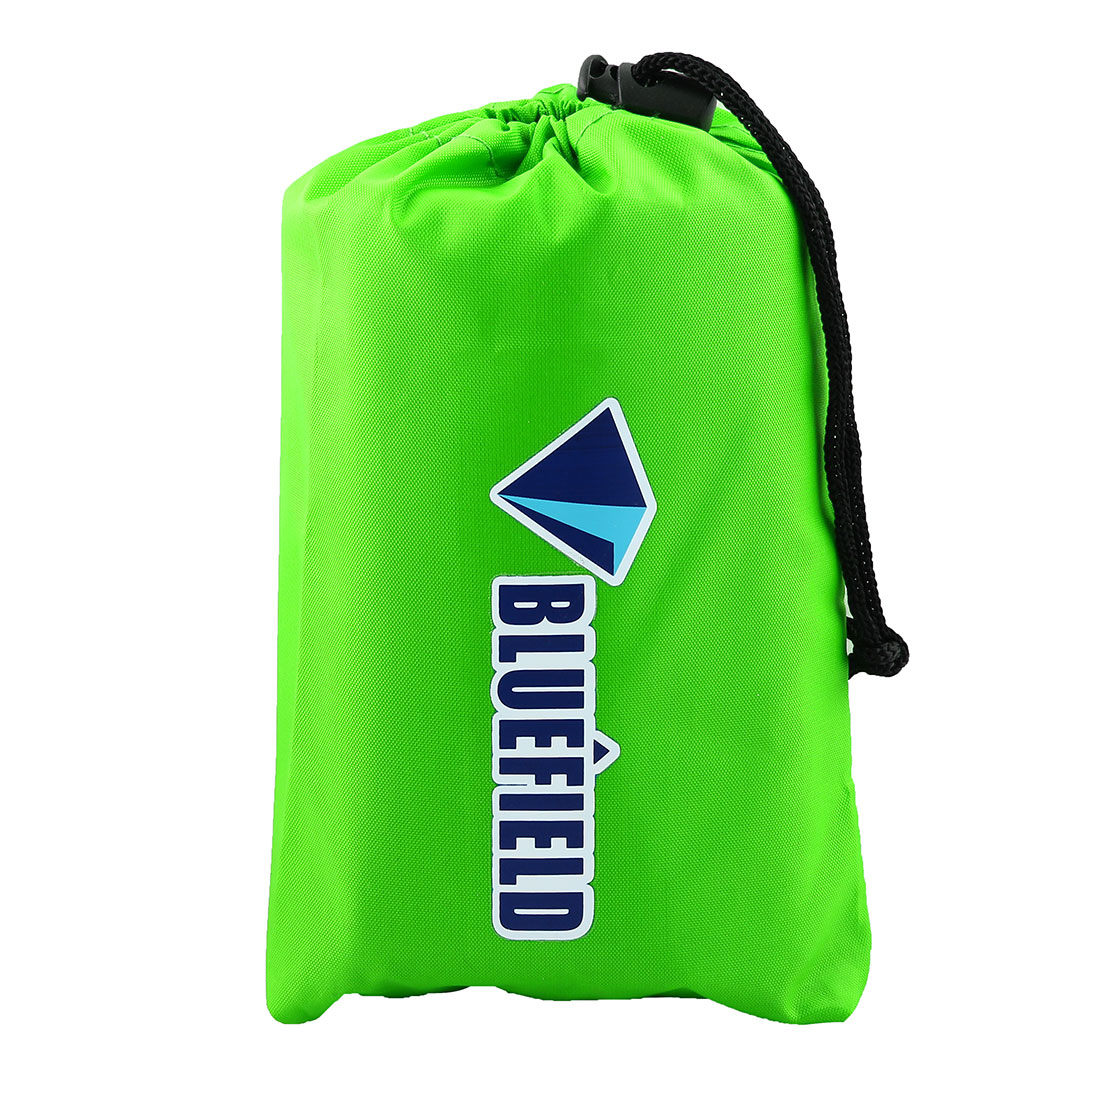 Bluefield Authorized Hiking Outdoor Water Resistant Picnic Blanket Foldable Camping Mat Pad Green